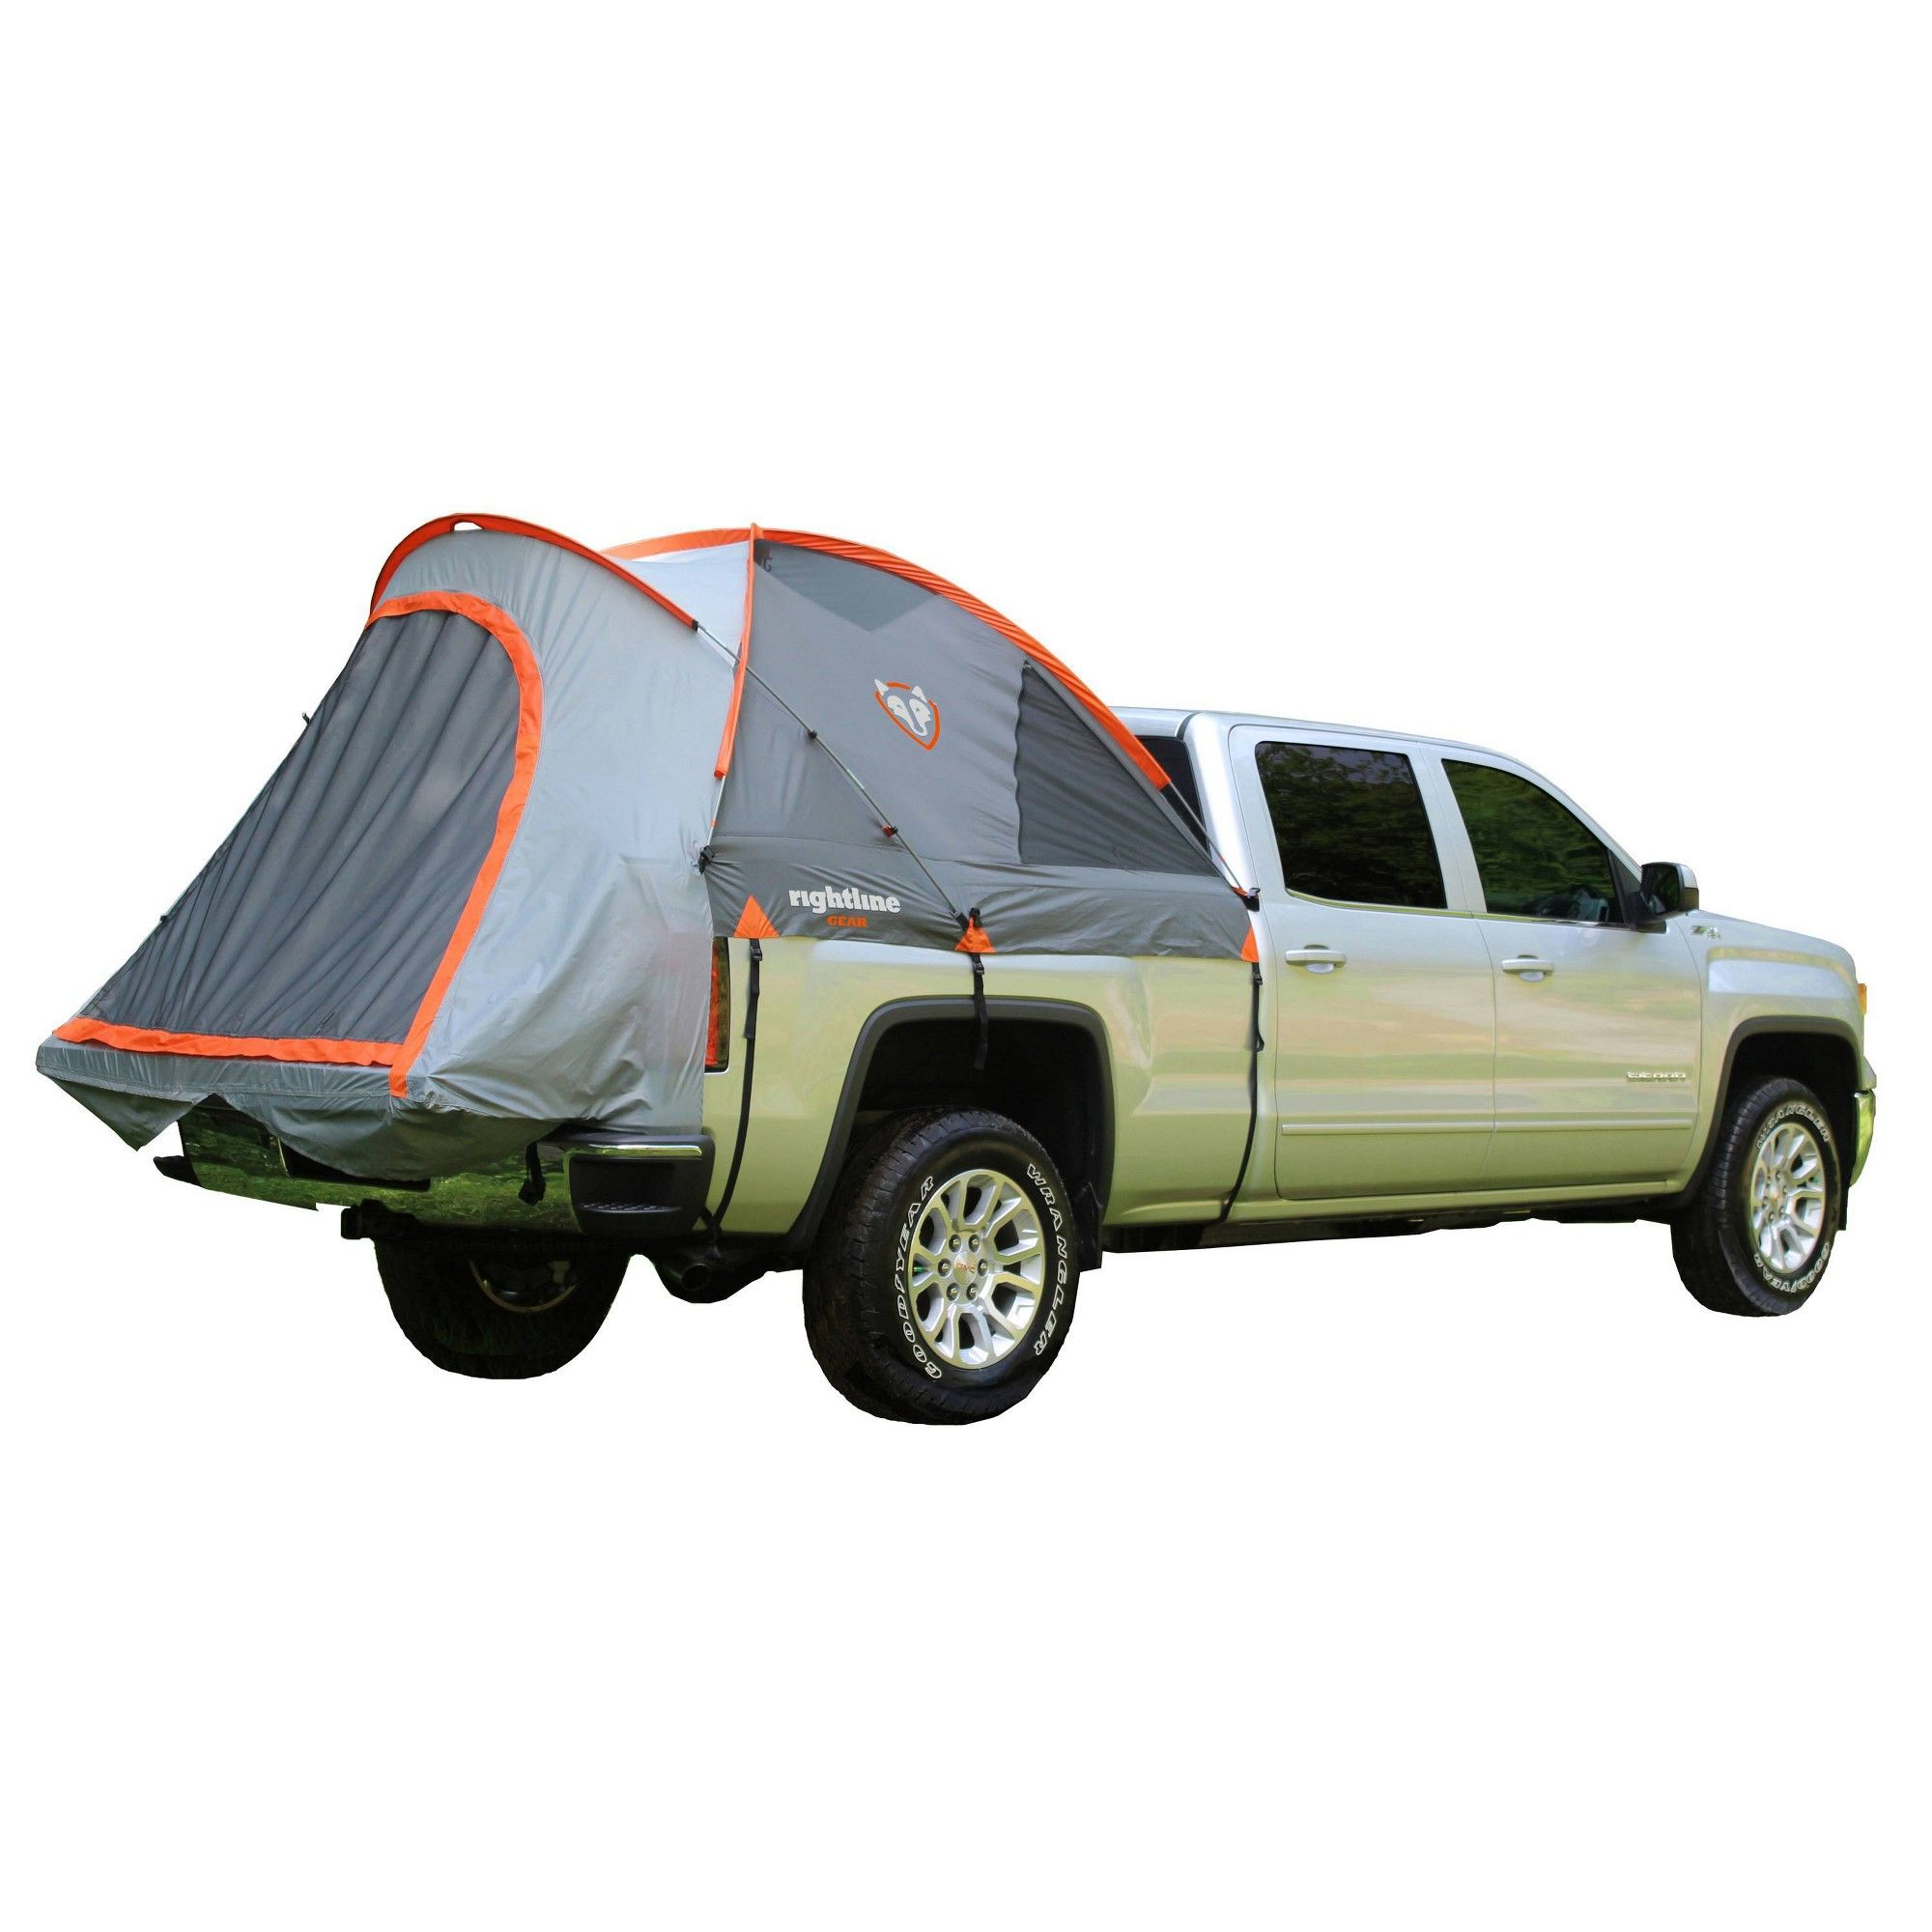 Rightline Gear 6' Mid Size Long Bed Truck Tent Gray